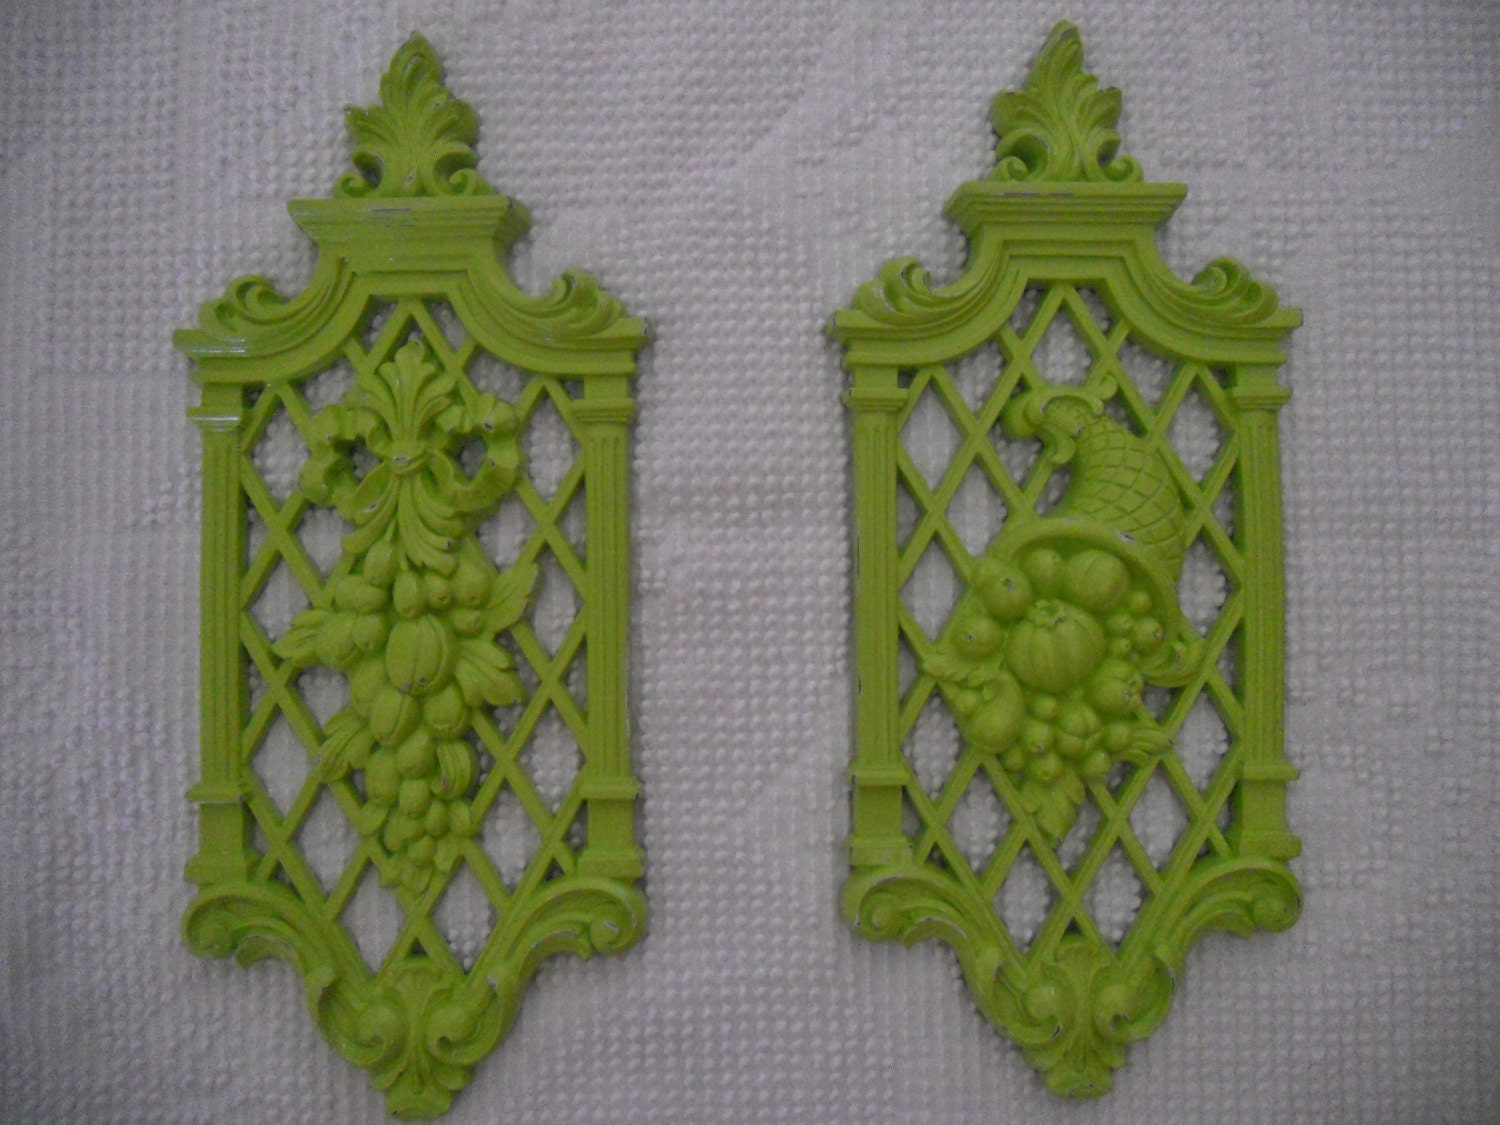 Upcycled Vintage Syroco Wall Decor In Lime Green By Chichaven